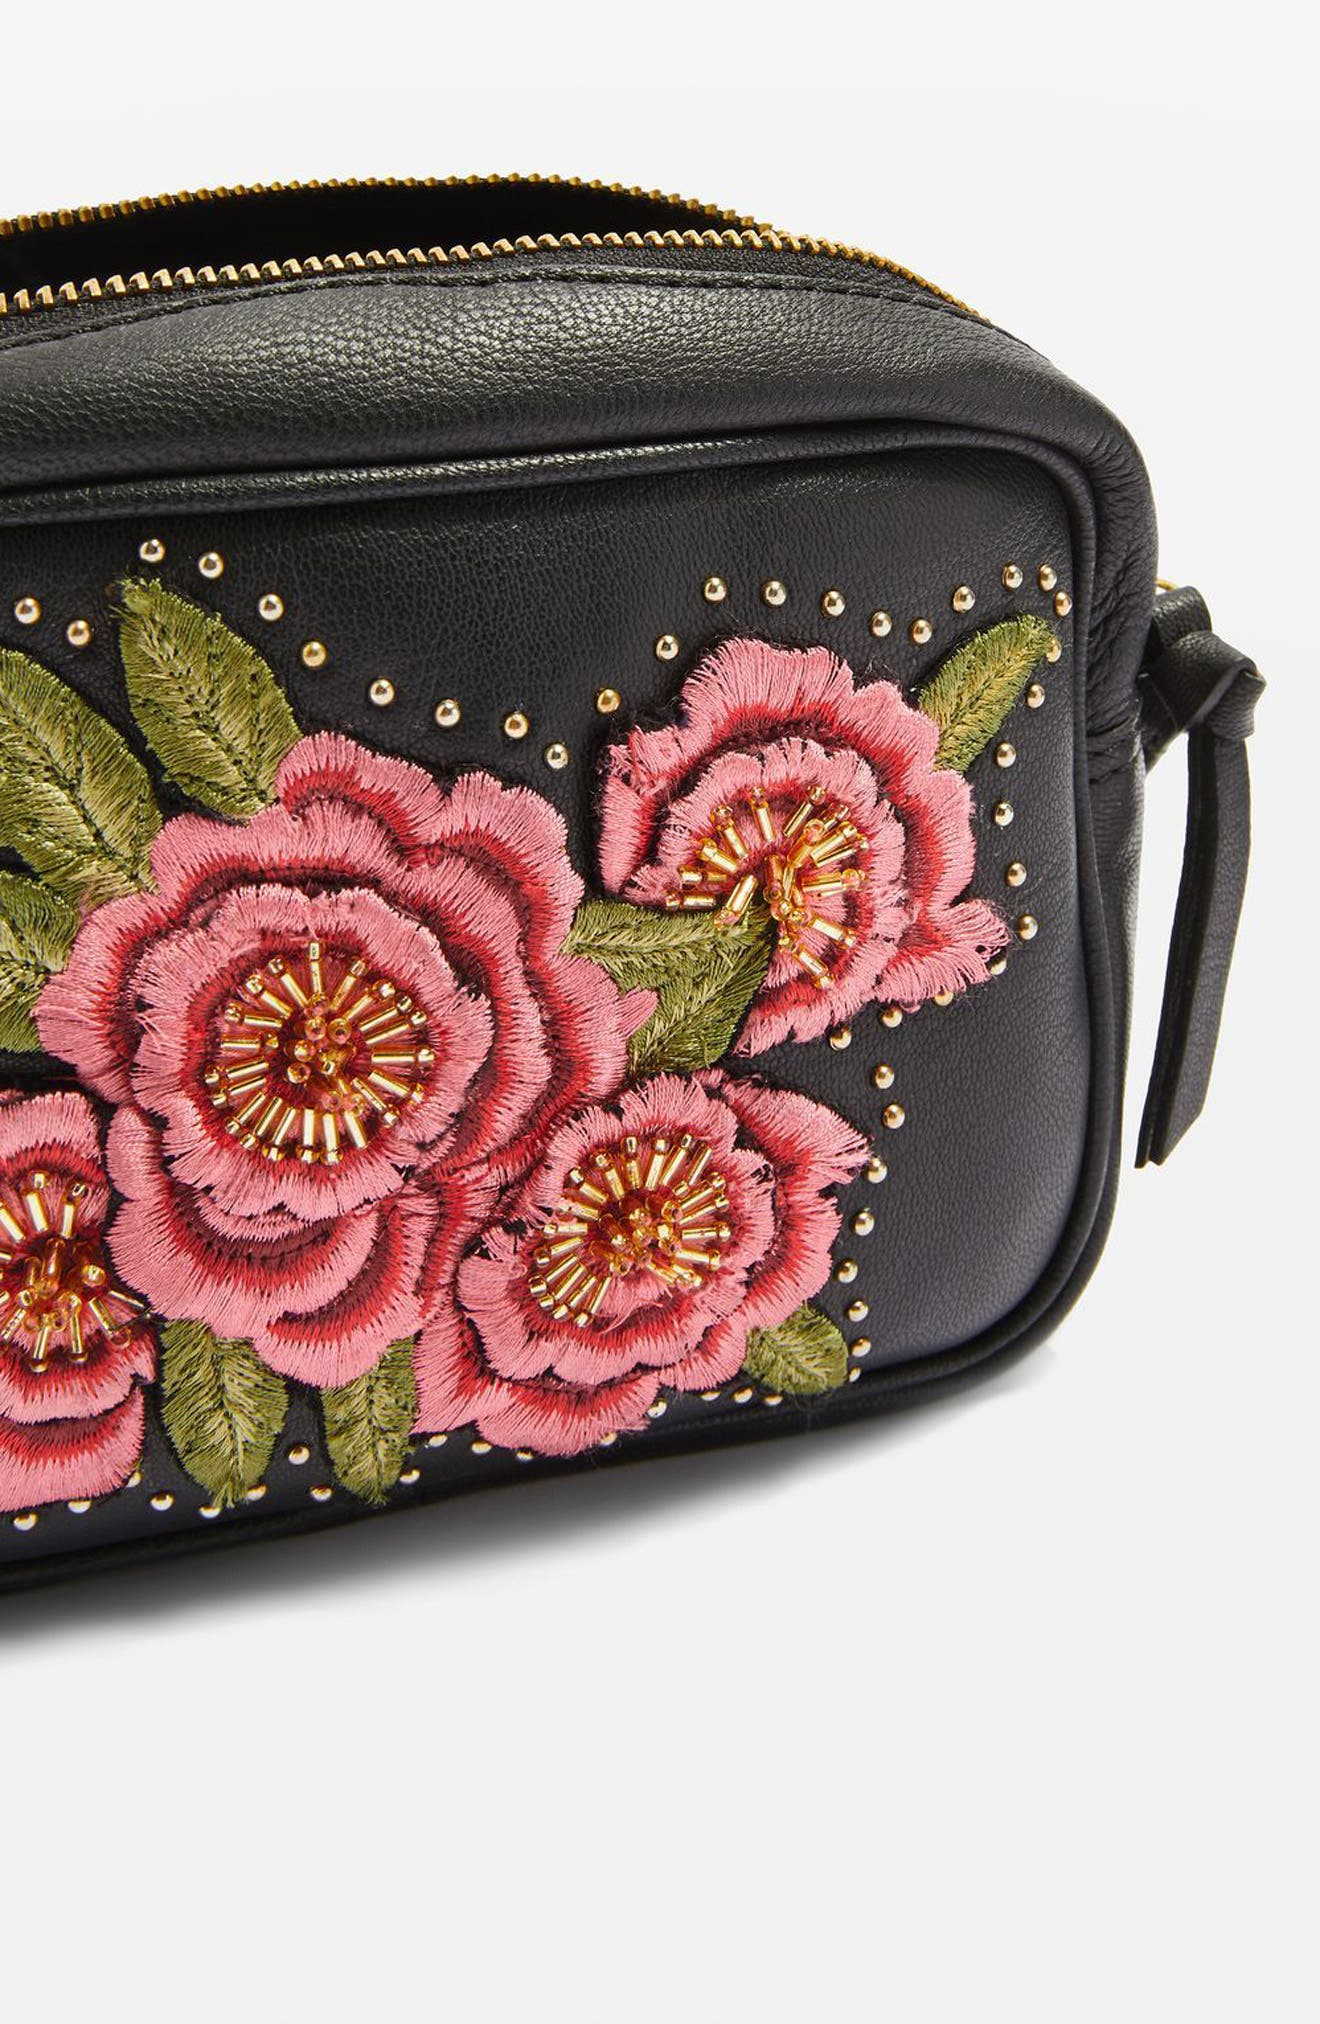 Floral Embroidered Leather Crossbody Bag,                             Alternate thumbnail 4, color,                             001